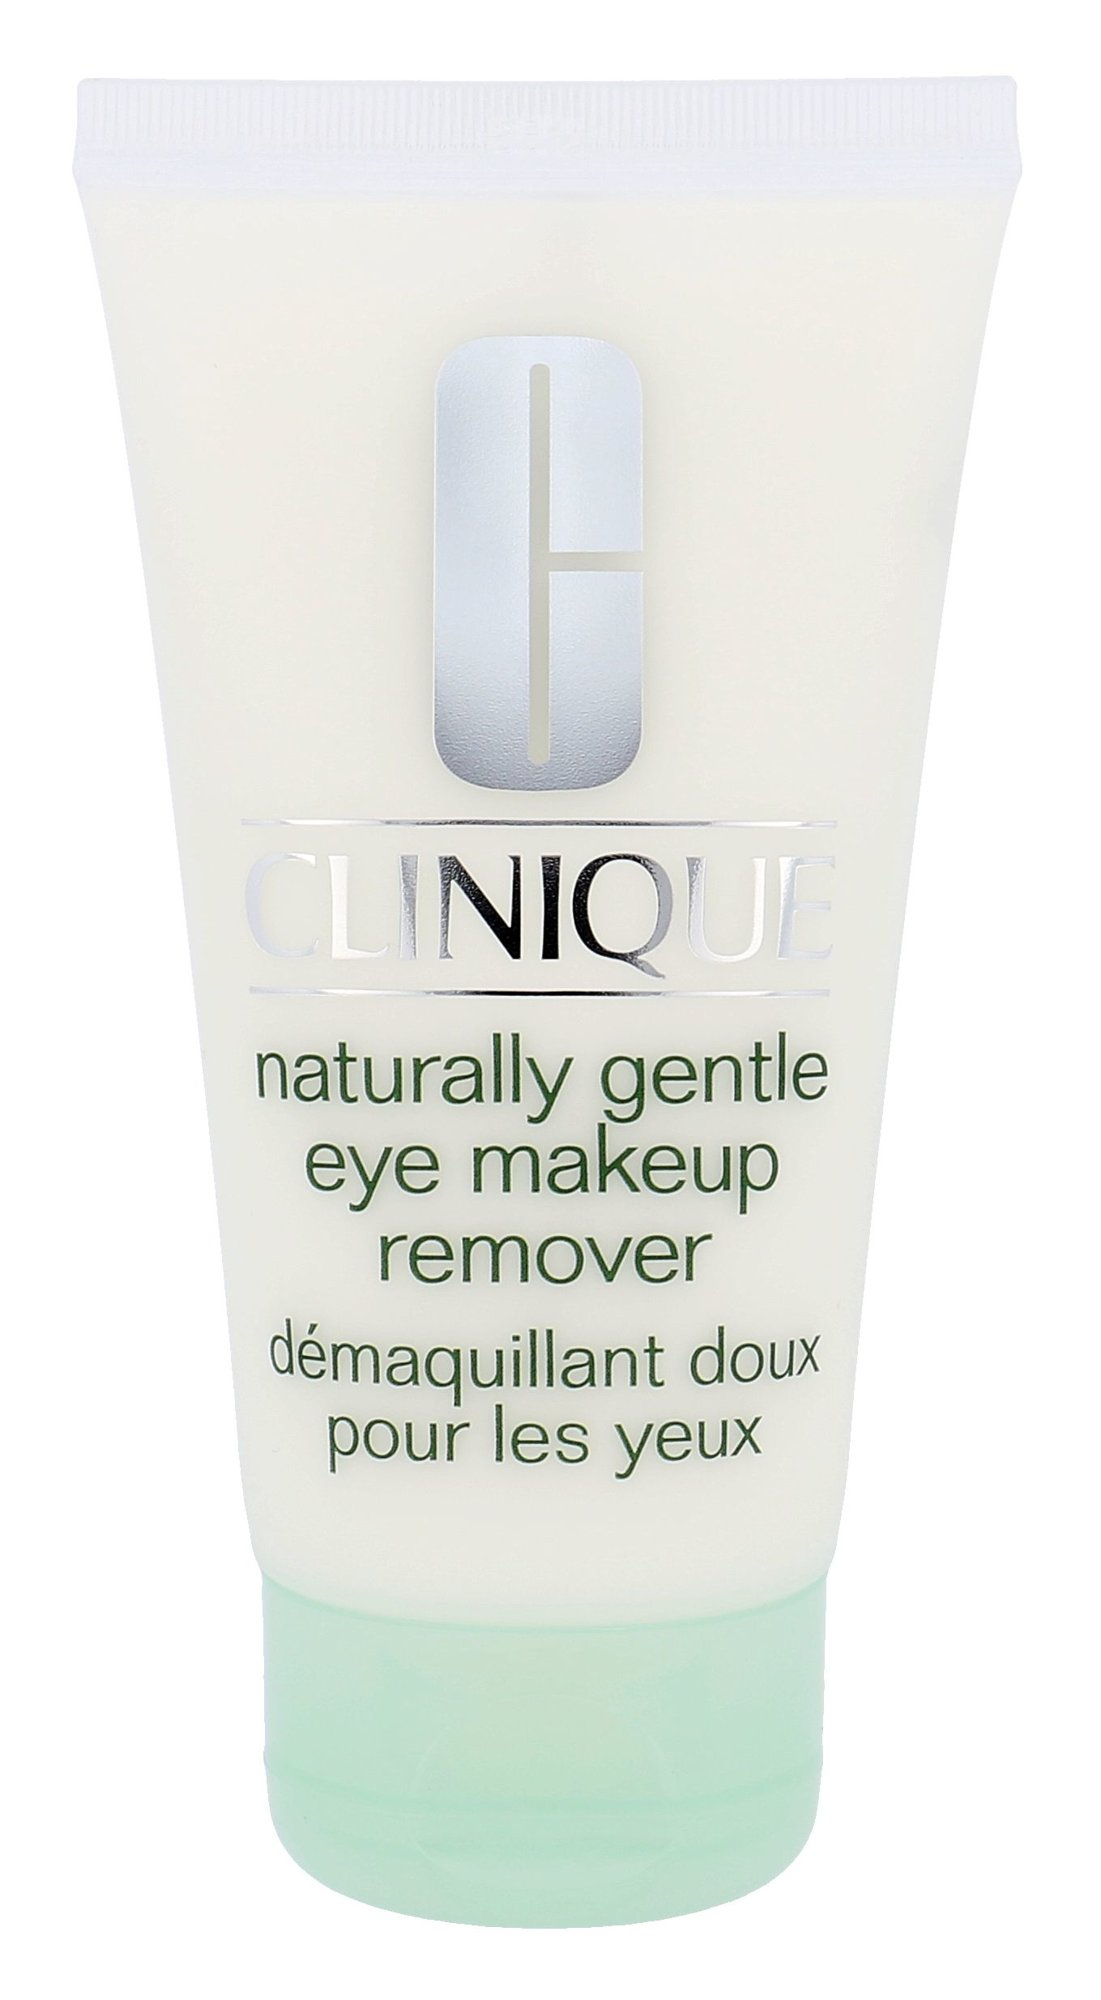 Clinique Naturally Gentle Cosmetic 75ml